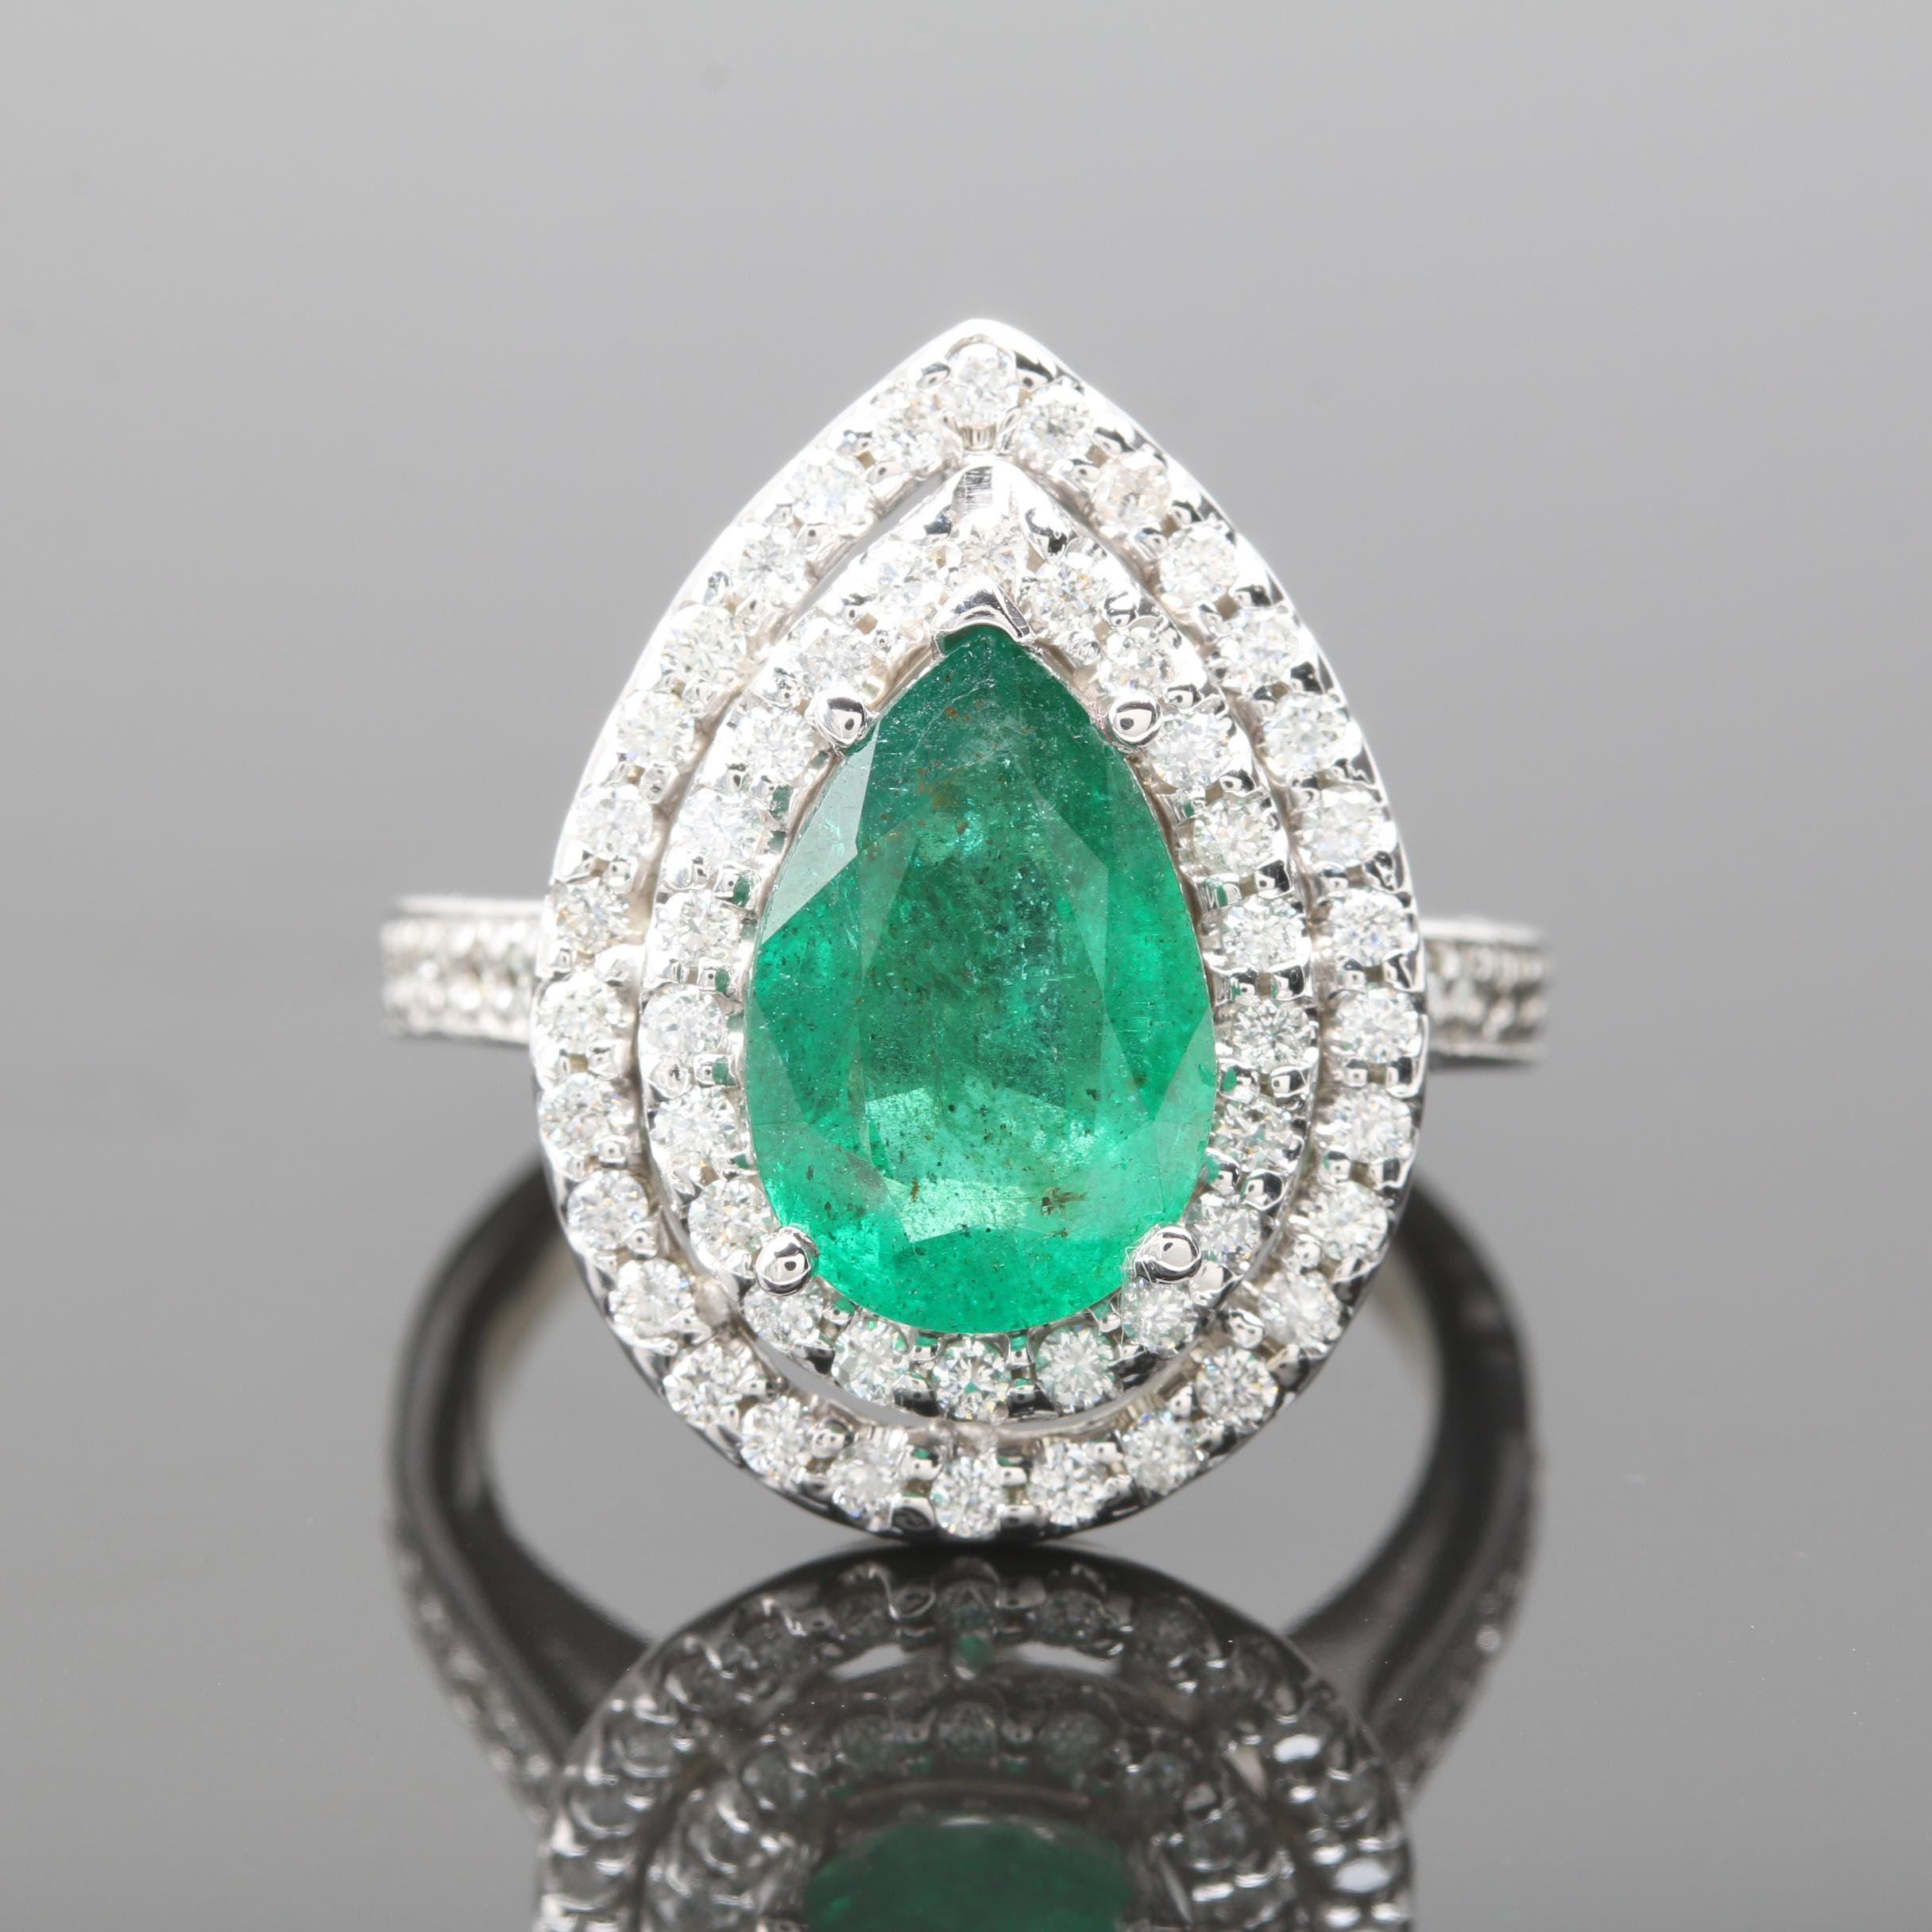 14K White Gold 2.01 CT Emerald and Diamond Ring